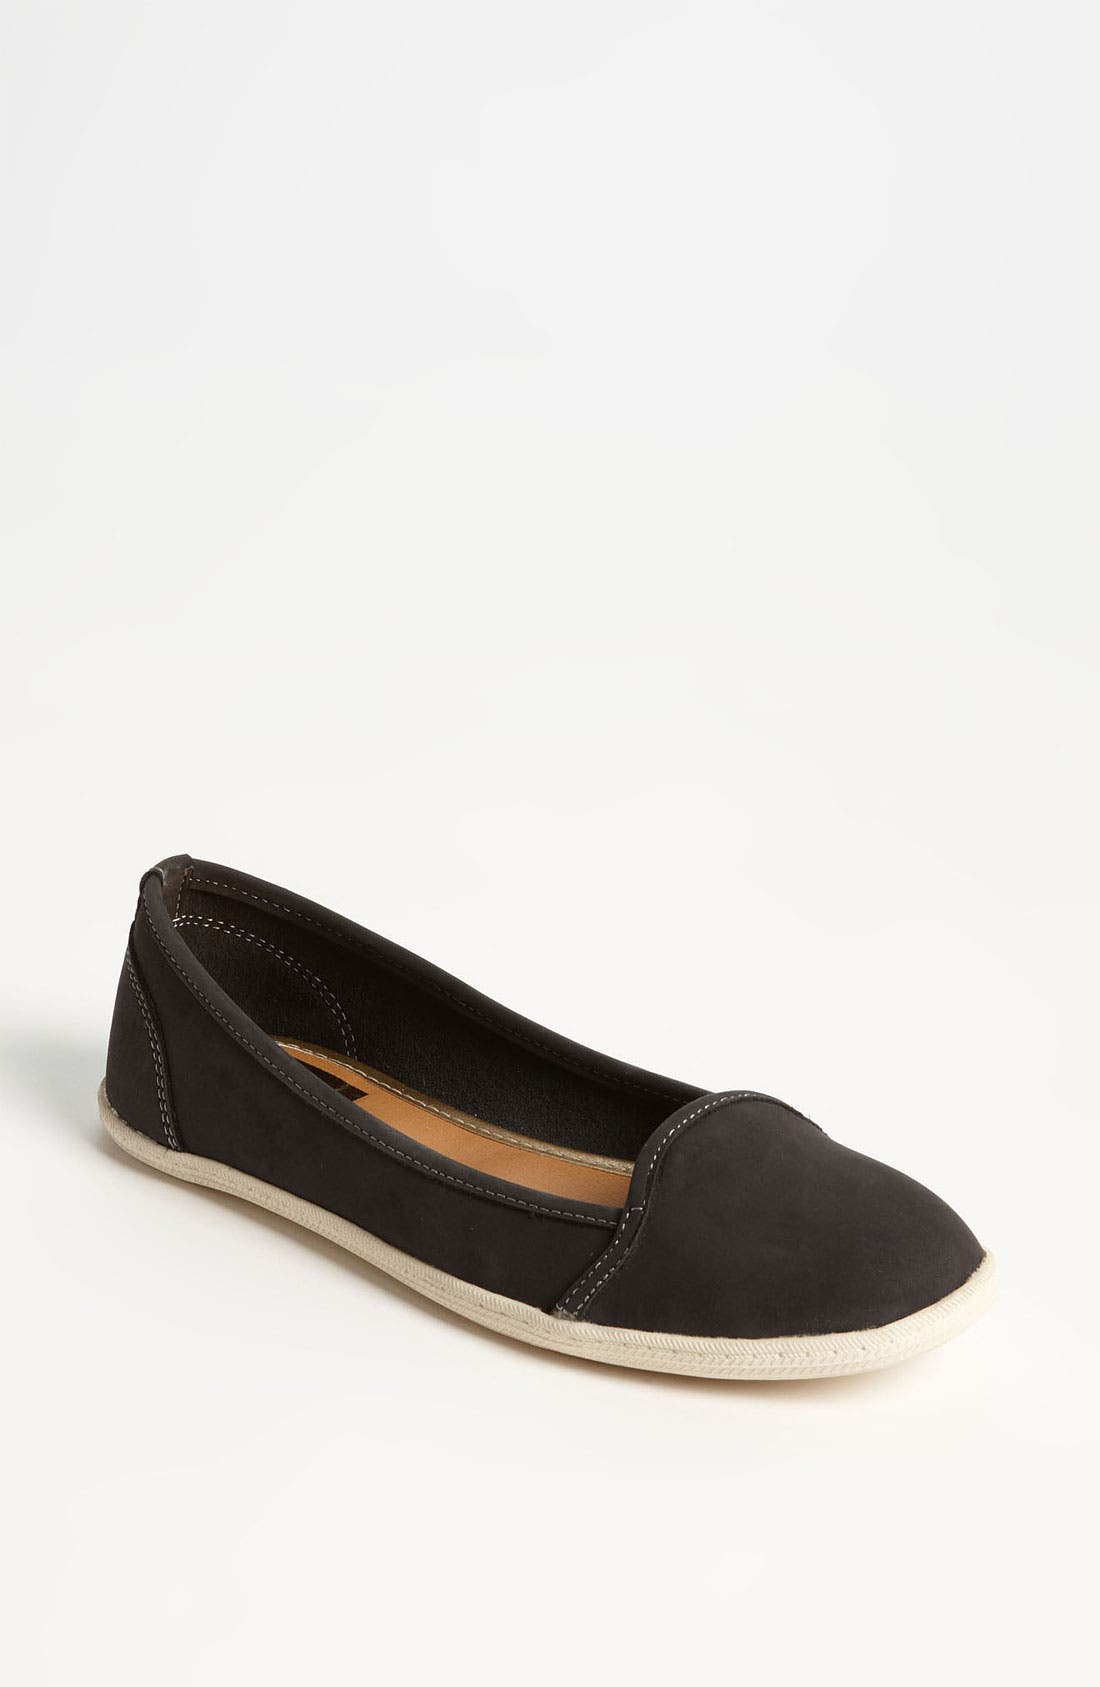 Main Image - DV by Dolce Vita 'Soloman' Flat (Online Only)